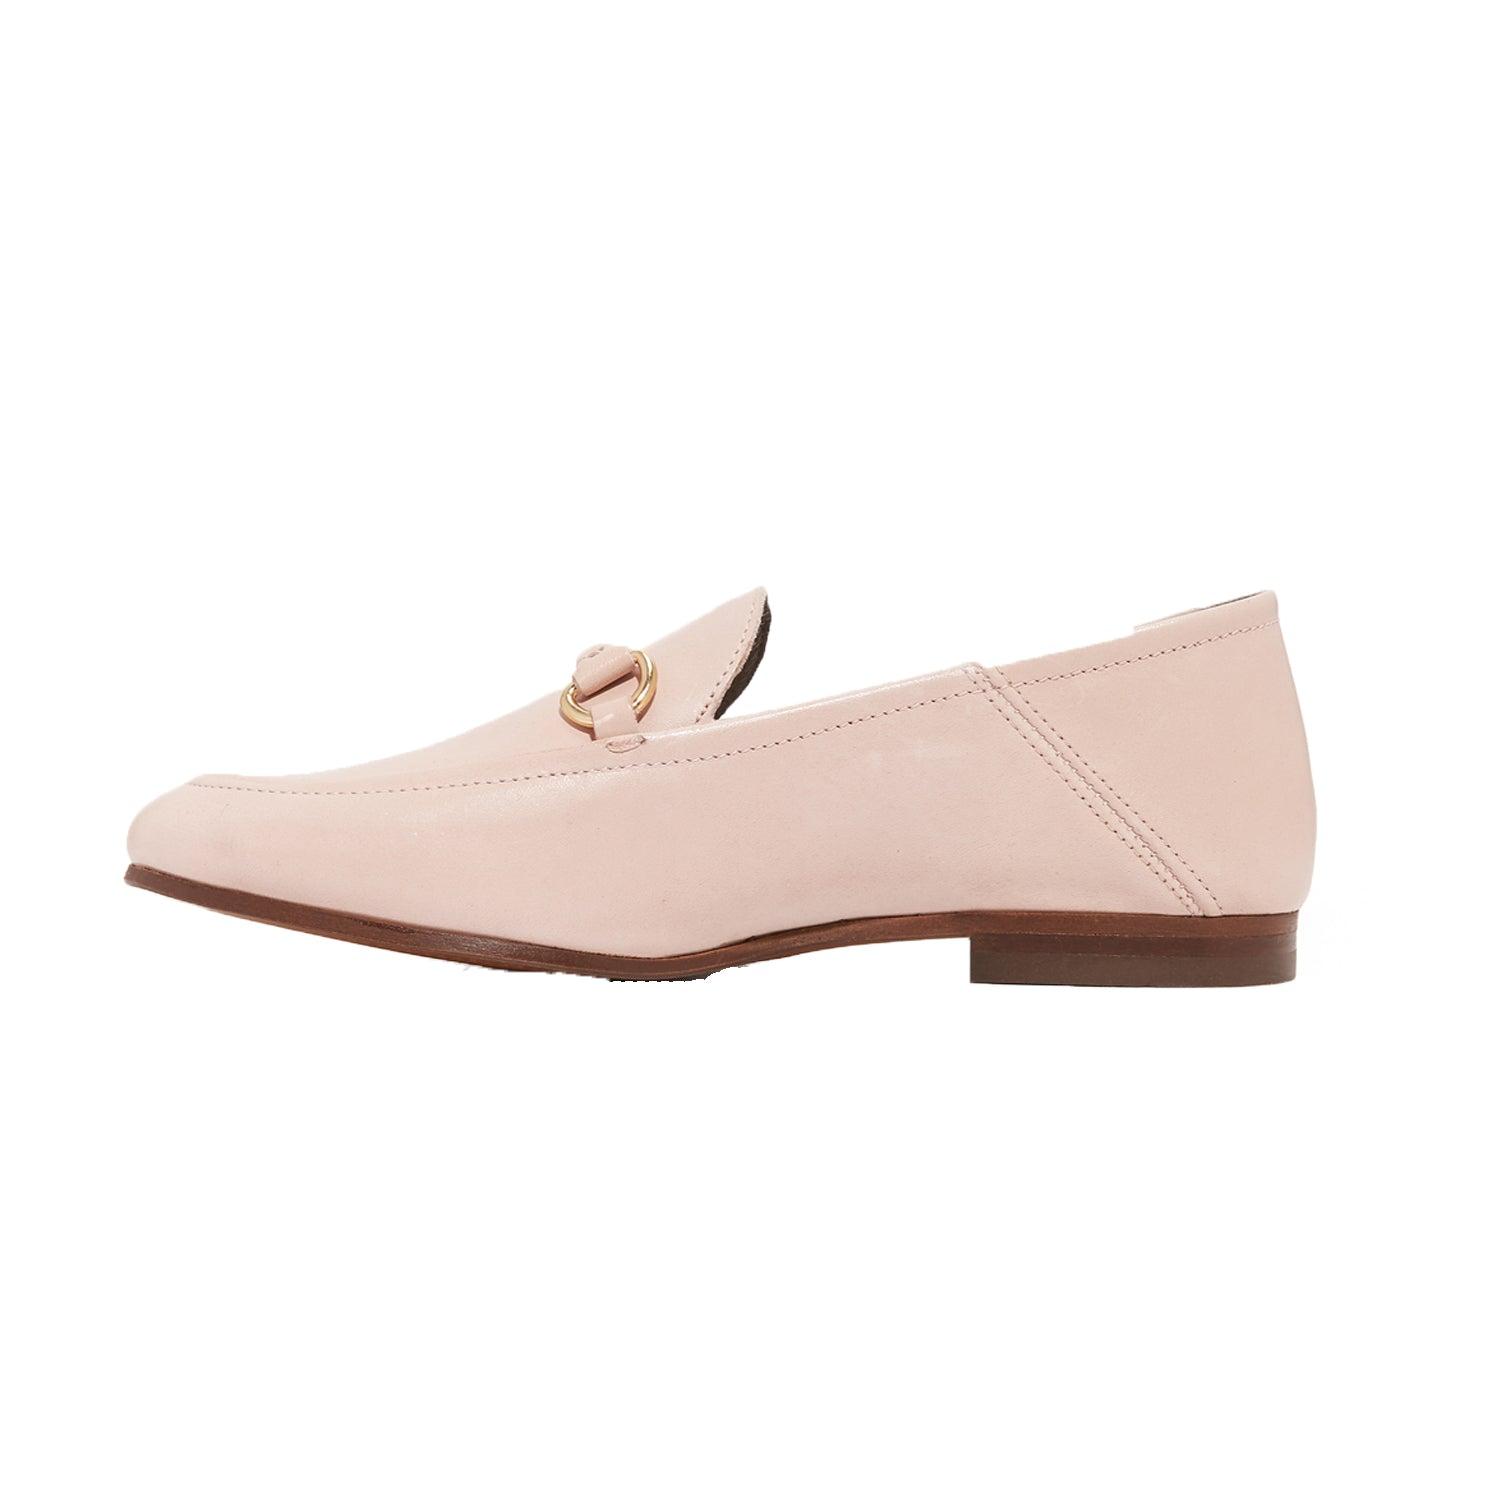 Hudson London Arianna Loafer   Muse Boutique Outlet